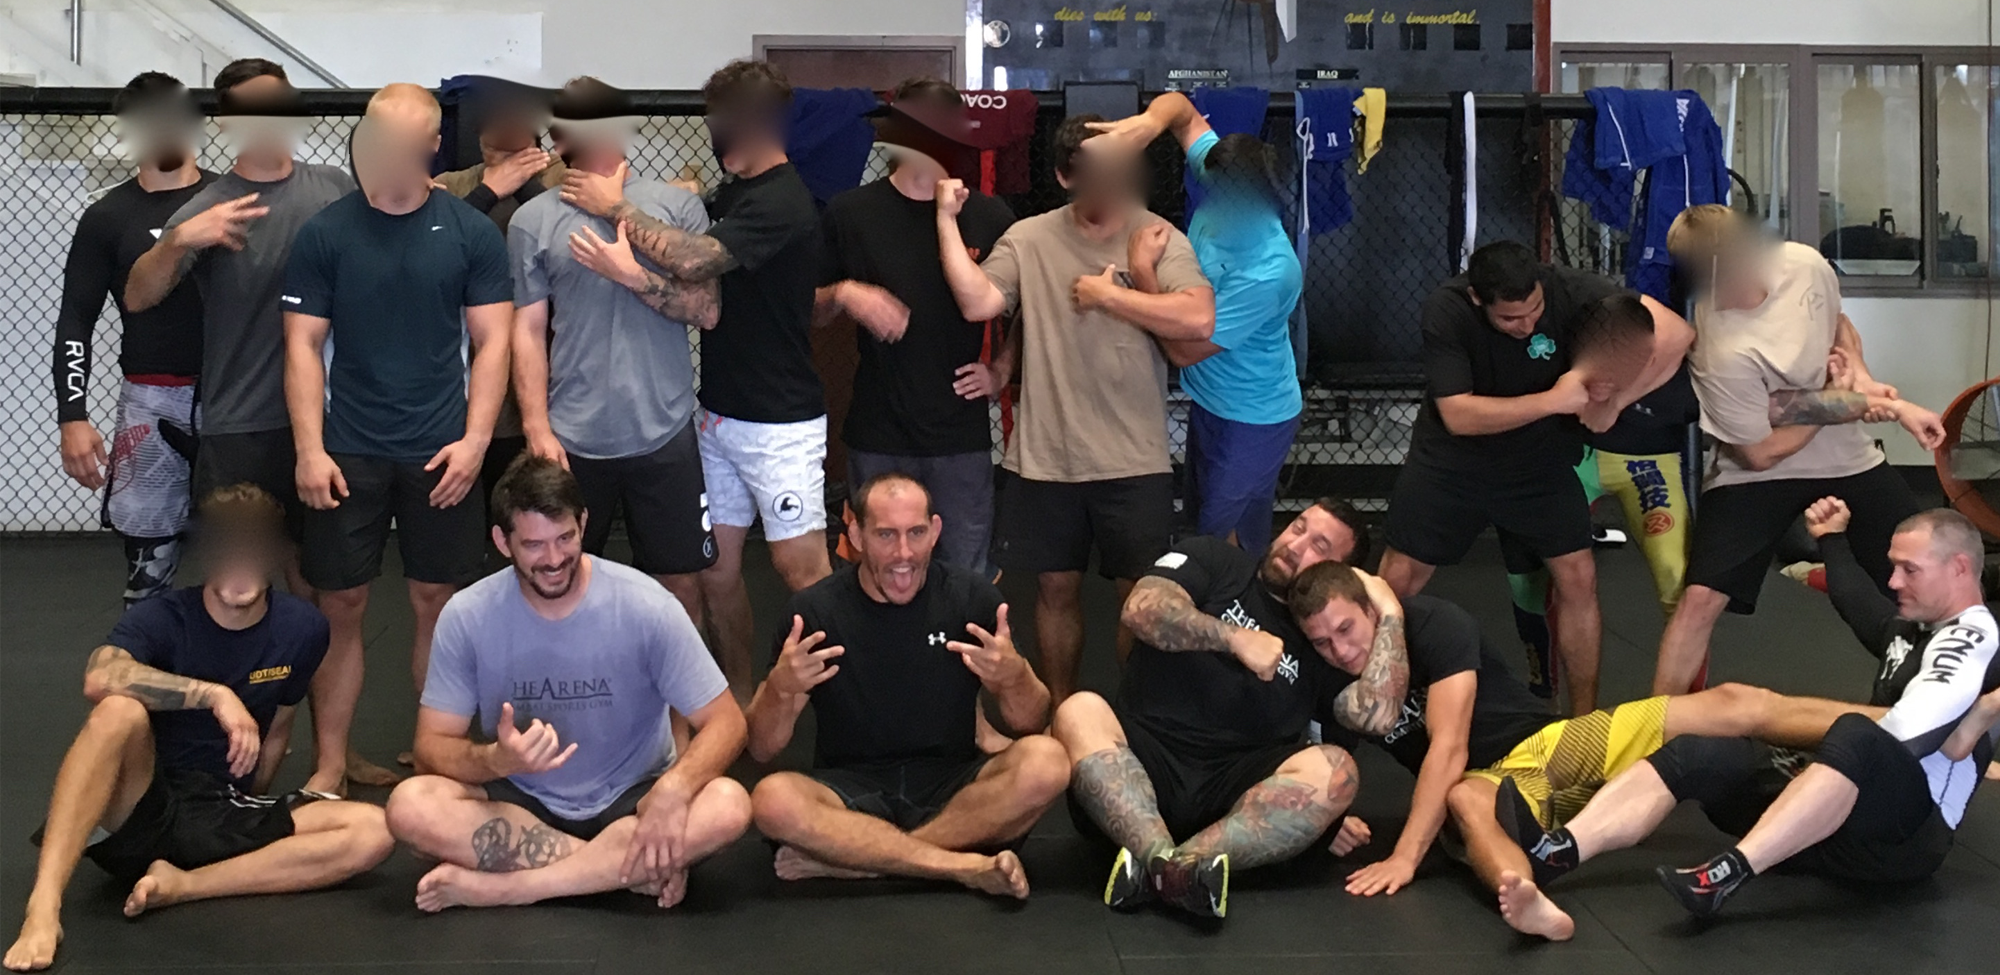 Group shot of people in training class